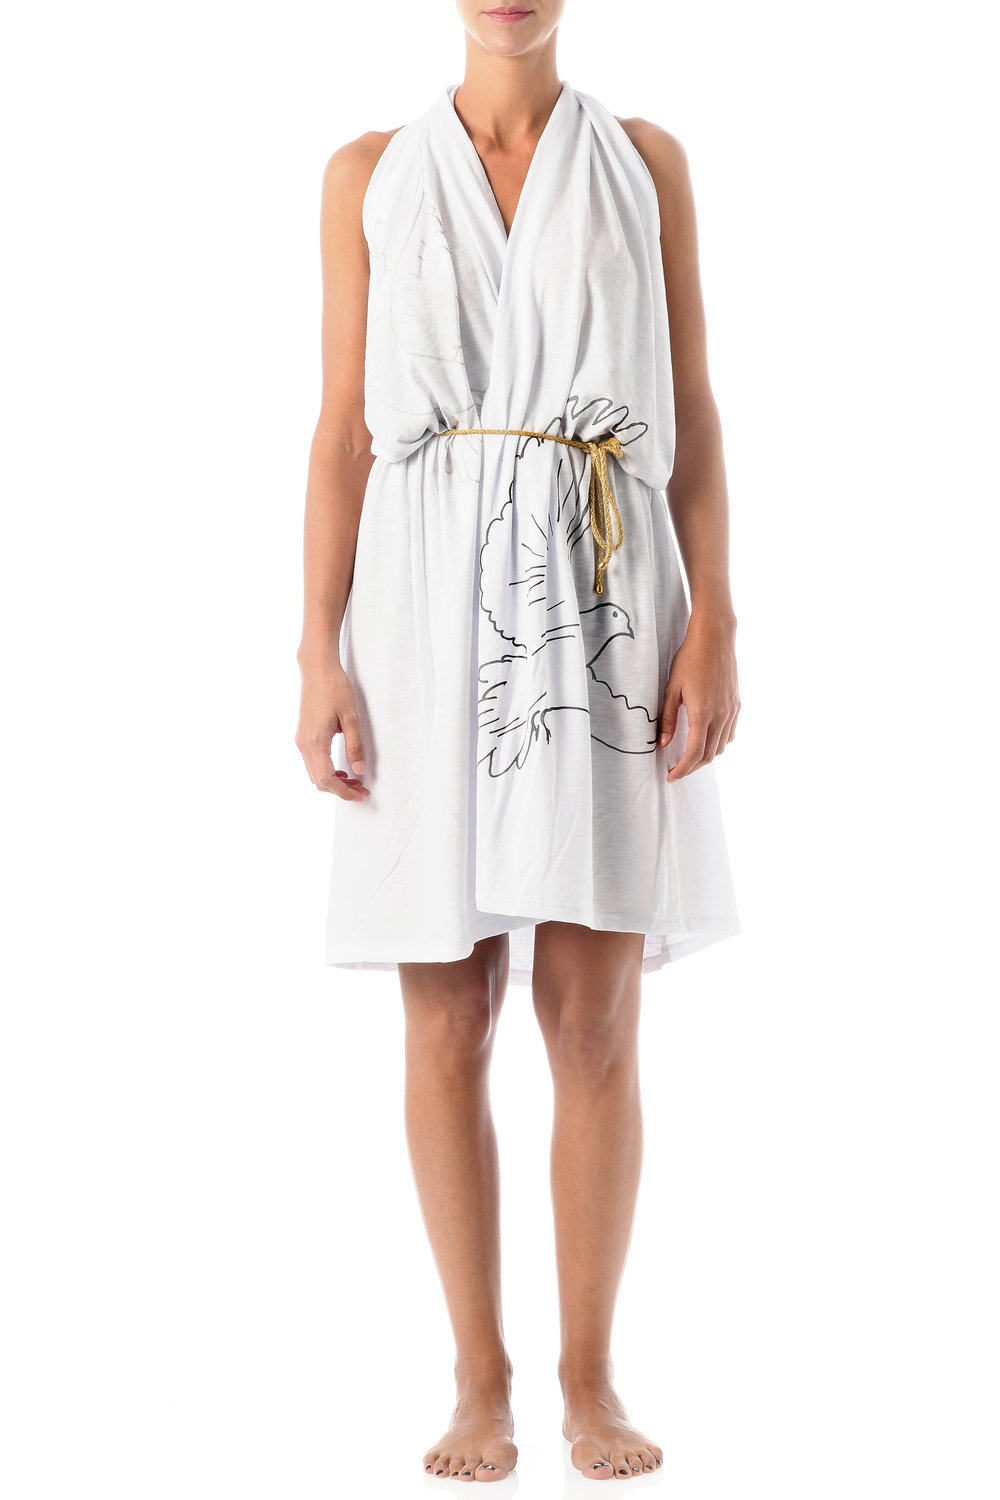 doves-on-white-cotton-wrap-dress.jpg